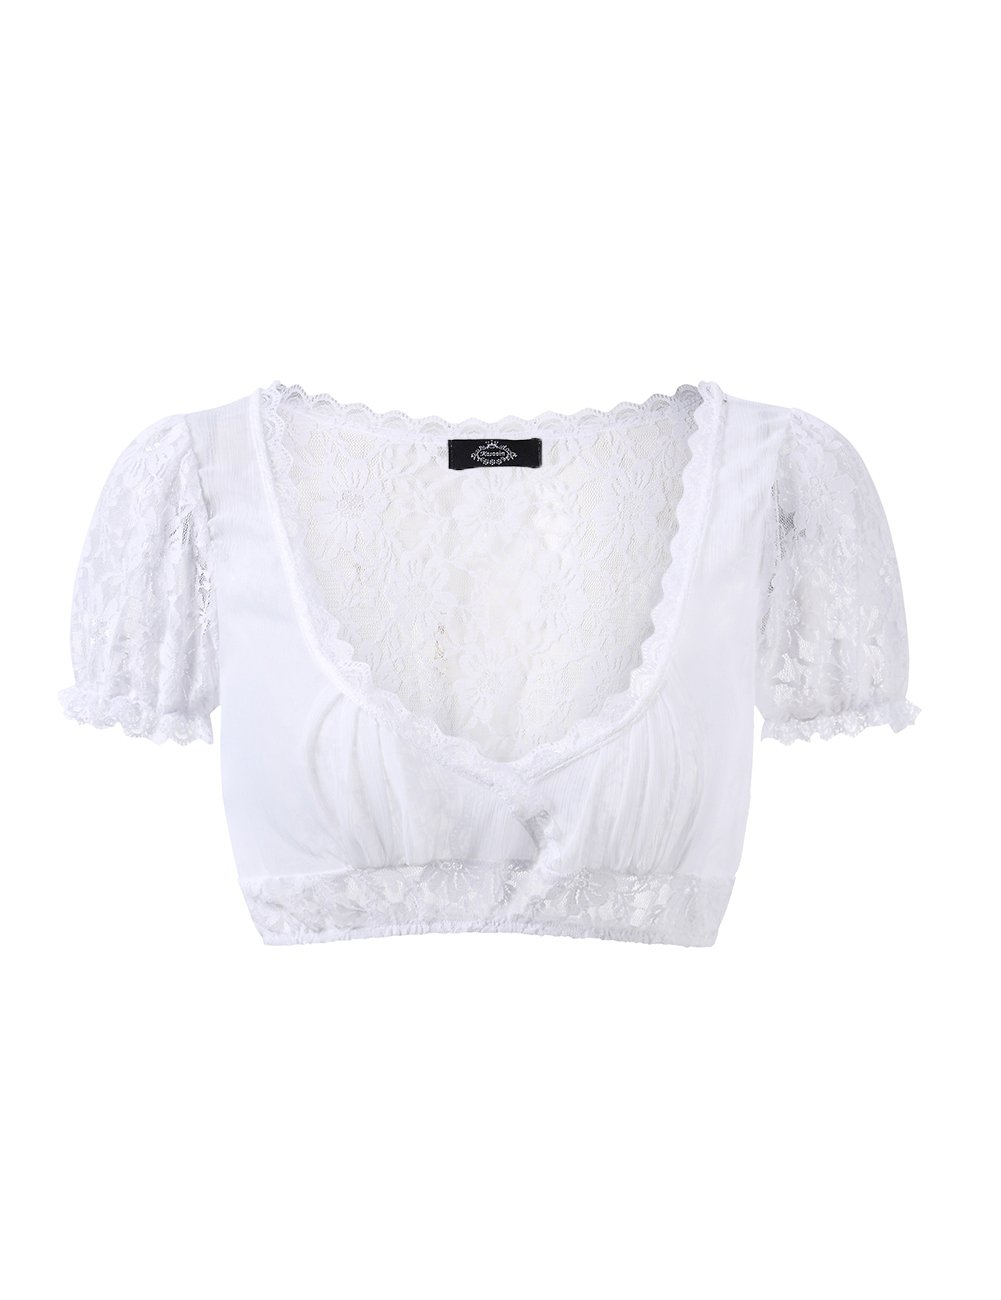 Aoile Women's Beer Festival Sexy Dirndl Top, See-Through Dirndl Lace Chiffon Splicing Stylish Dirndl Top